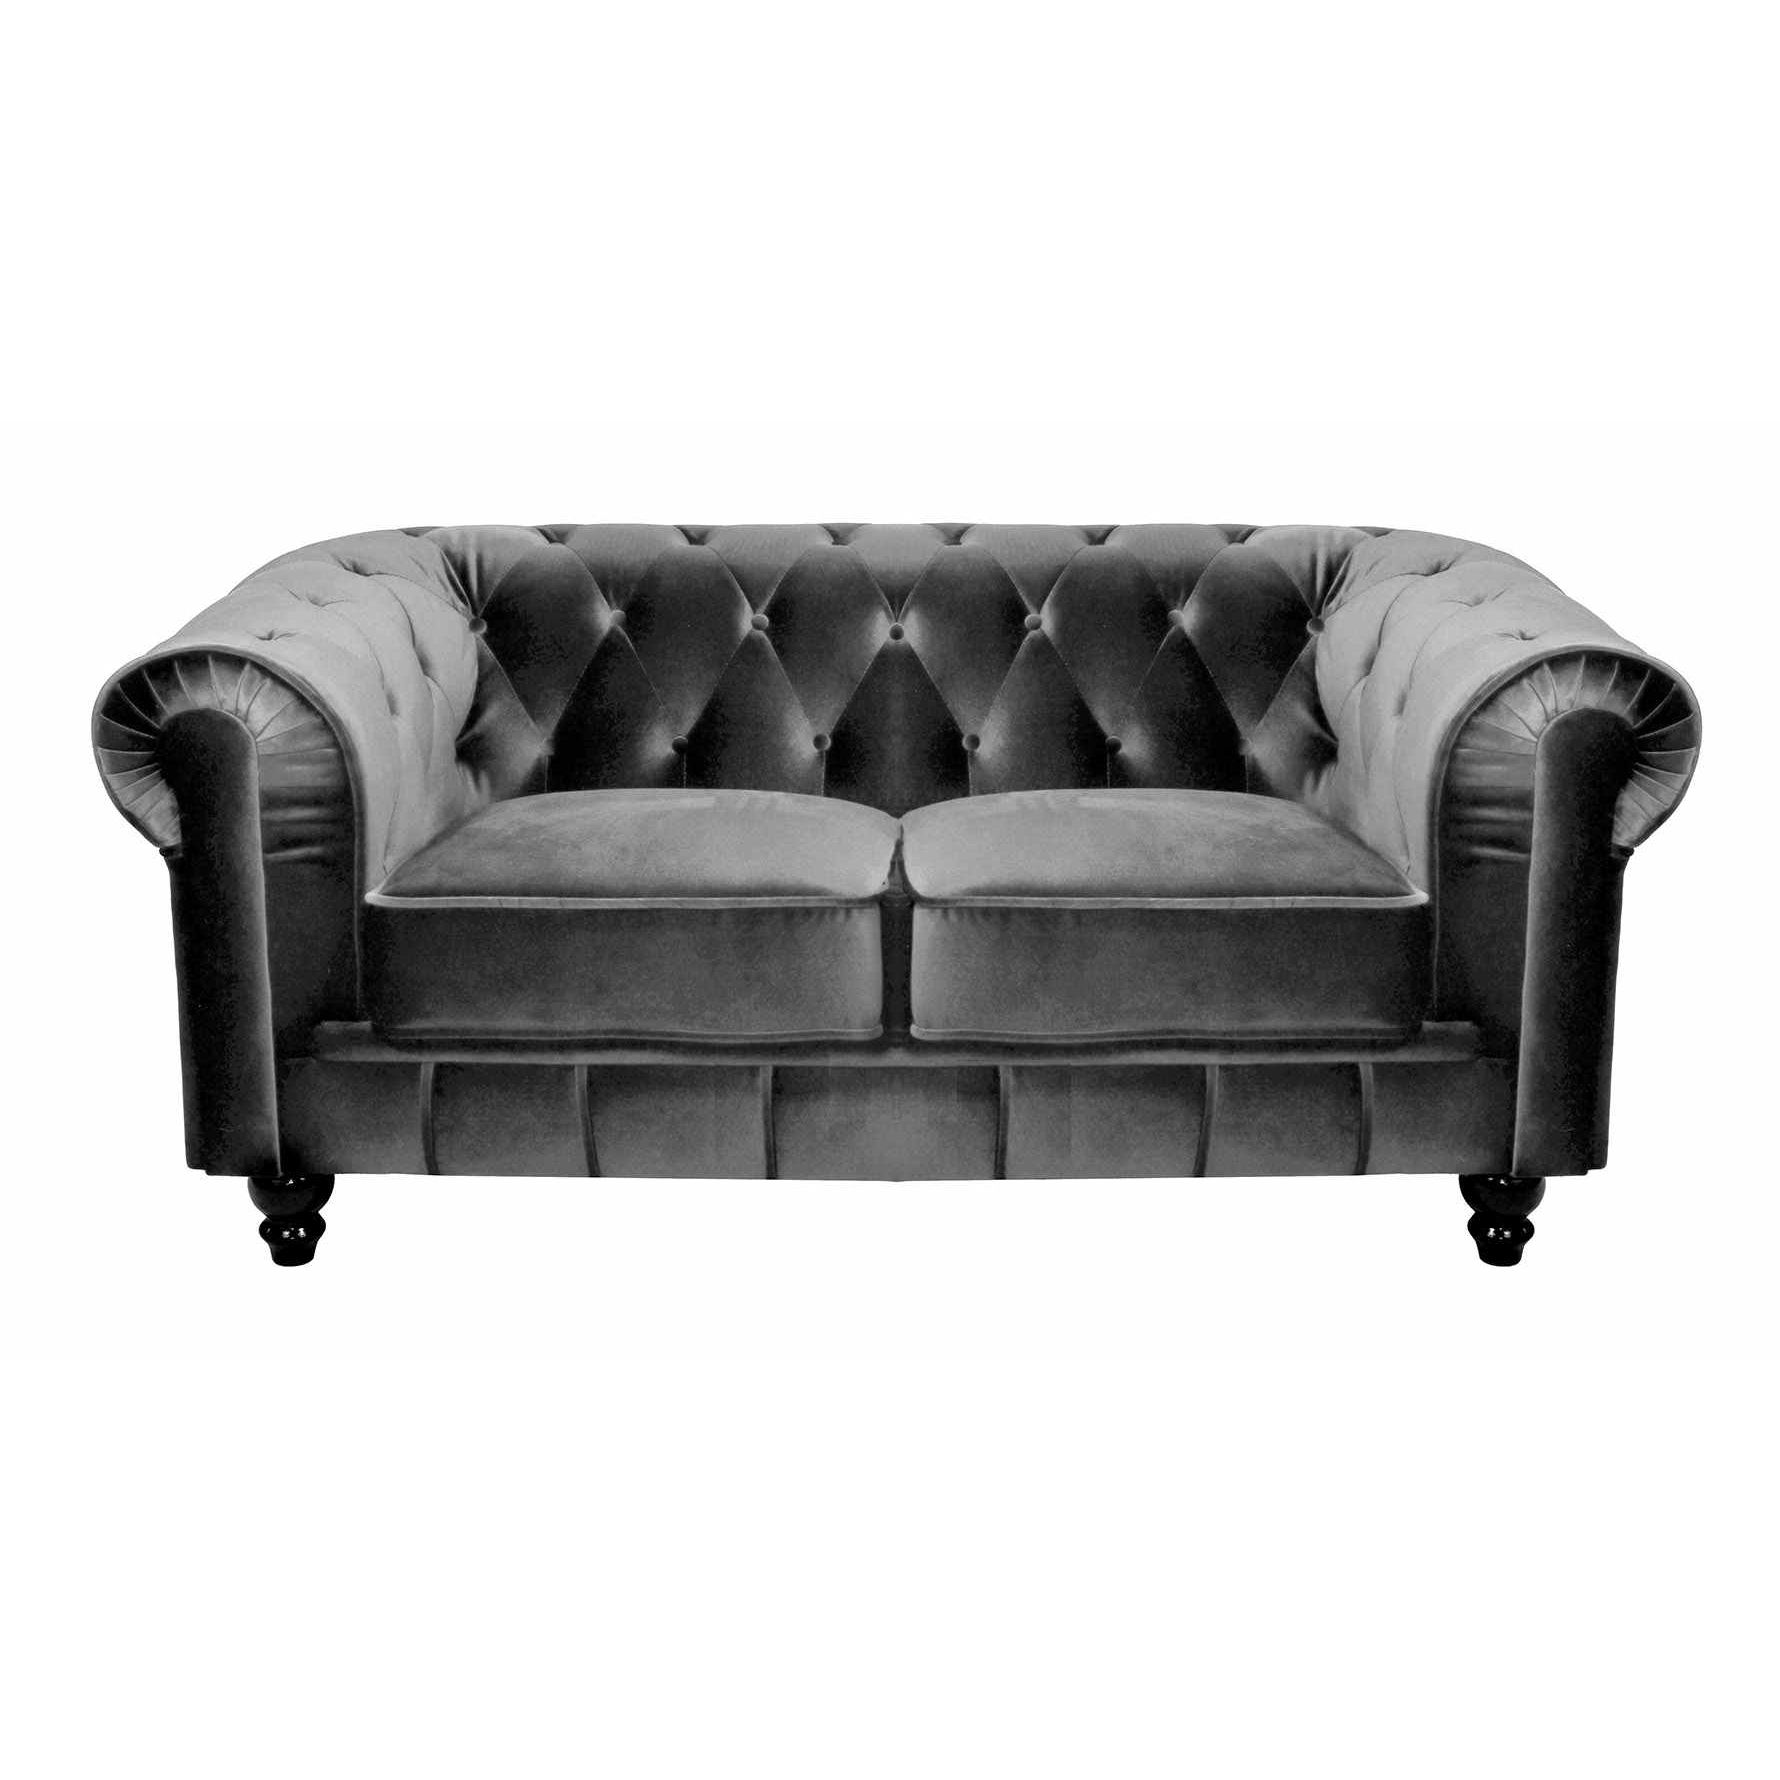 Deco in paris canape 2 places velours gris chesterfield - Canape en velours ...